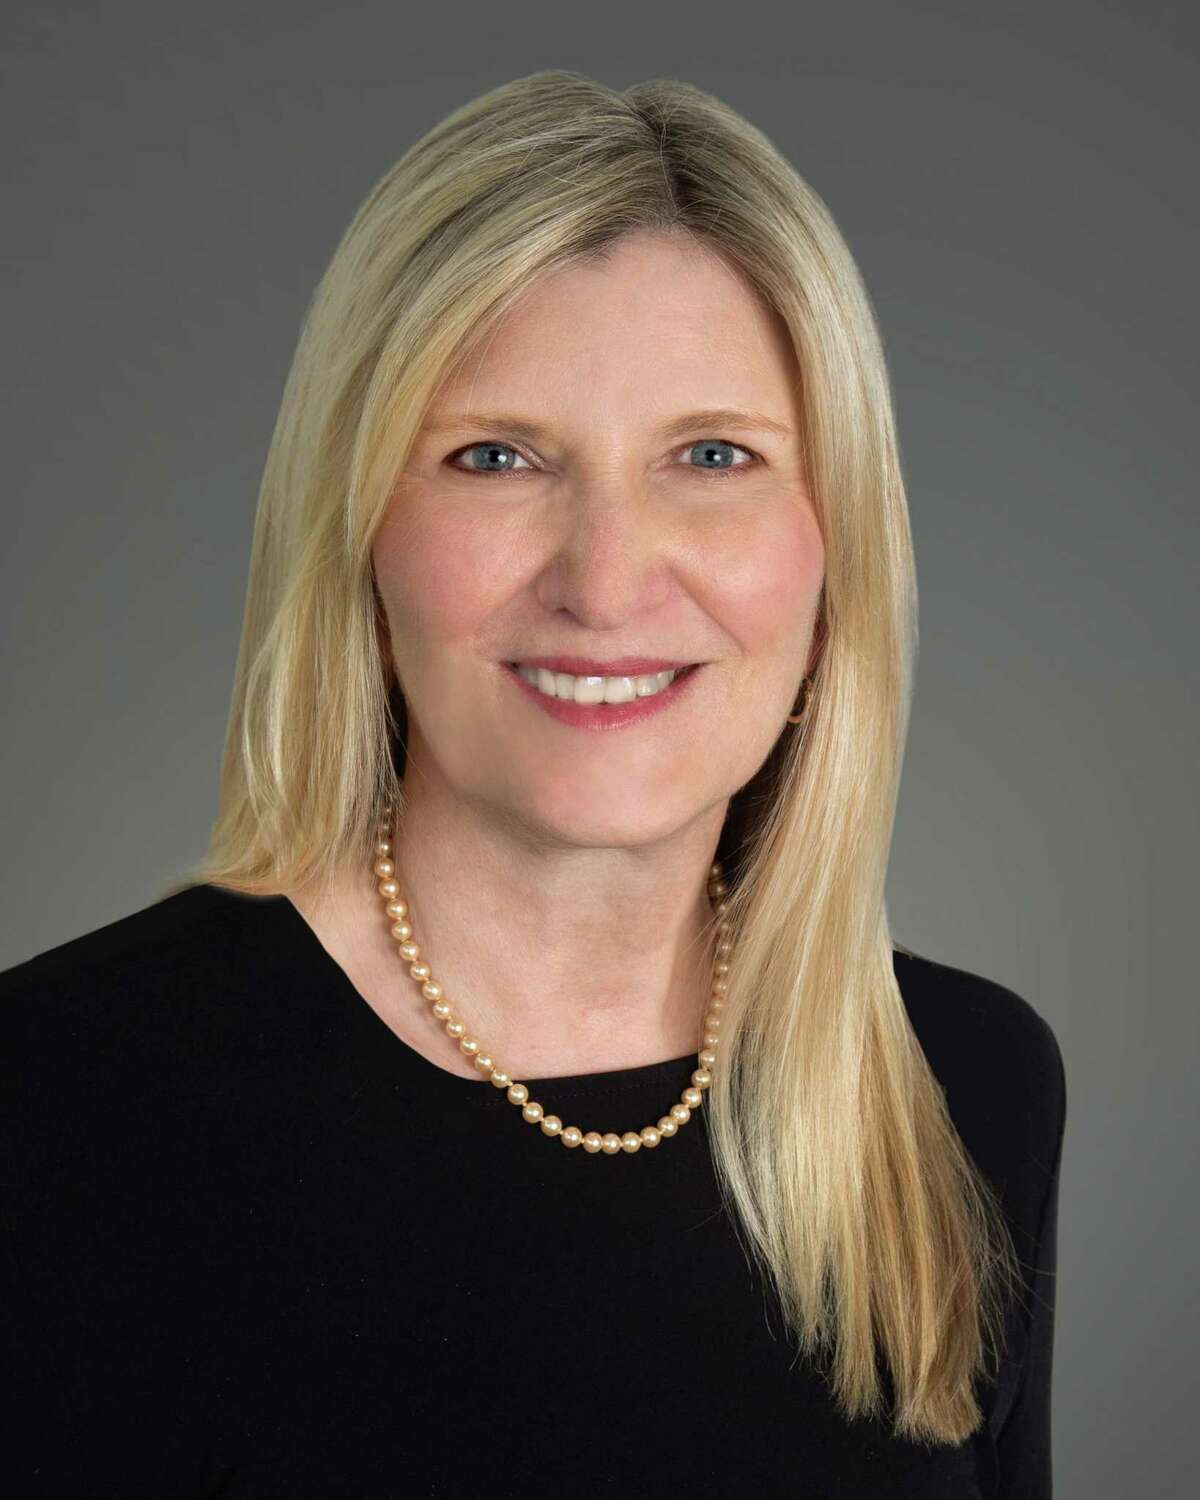 Allison Knapp of Milford has joined Washington Trust Co.'s commercial real estate group as a vice president and relationship manager in the state, primarily in the New Haven and Fairfield markets, according to a release.